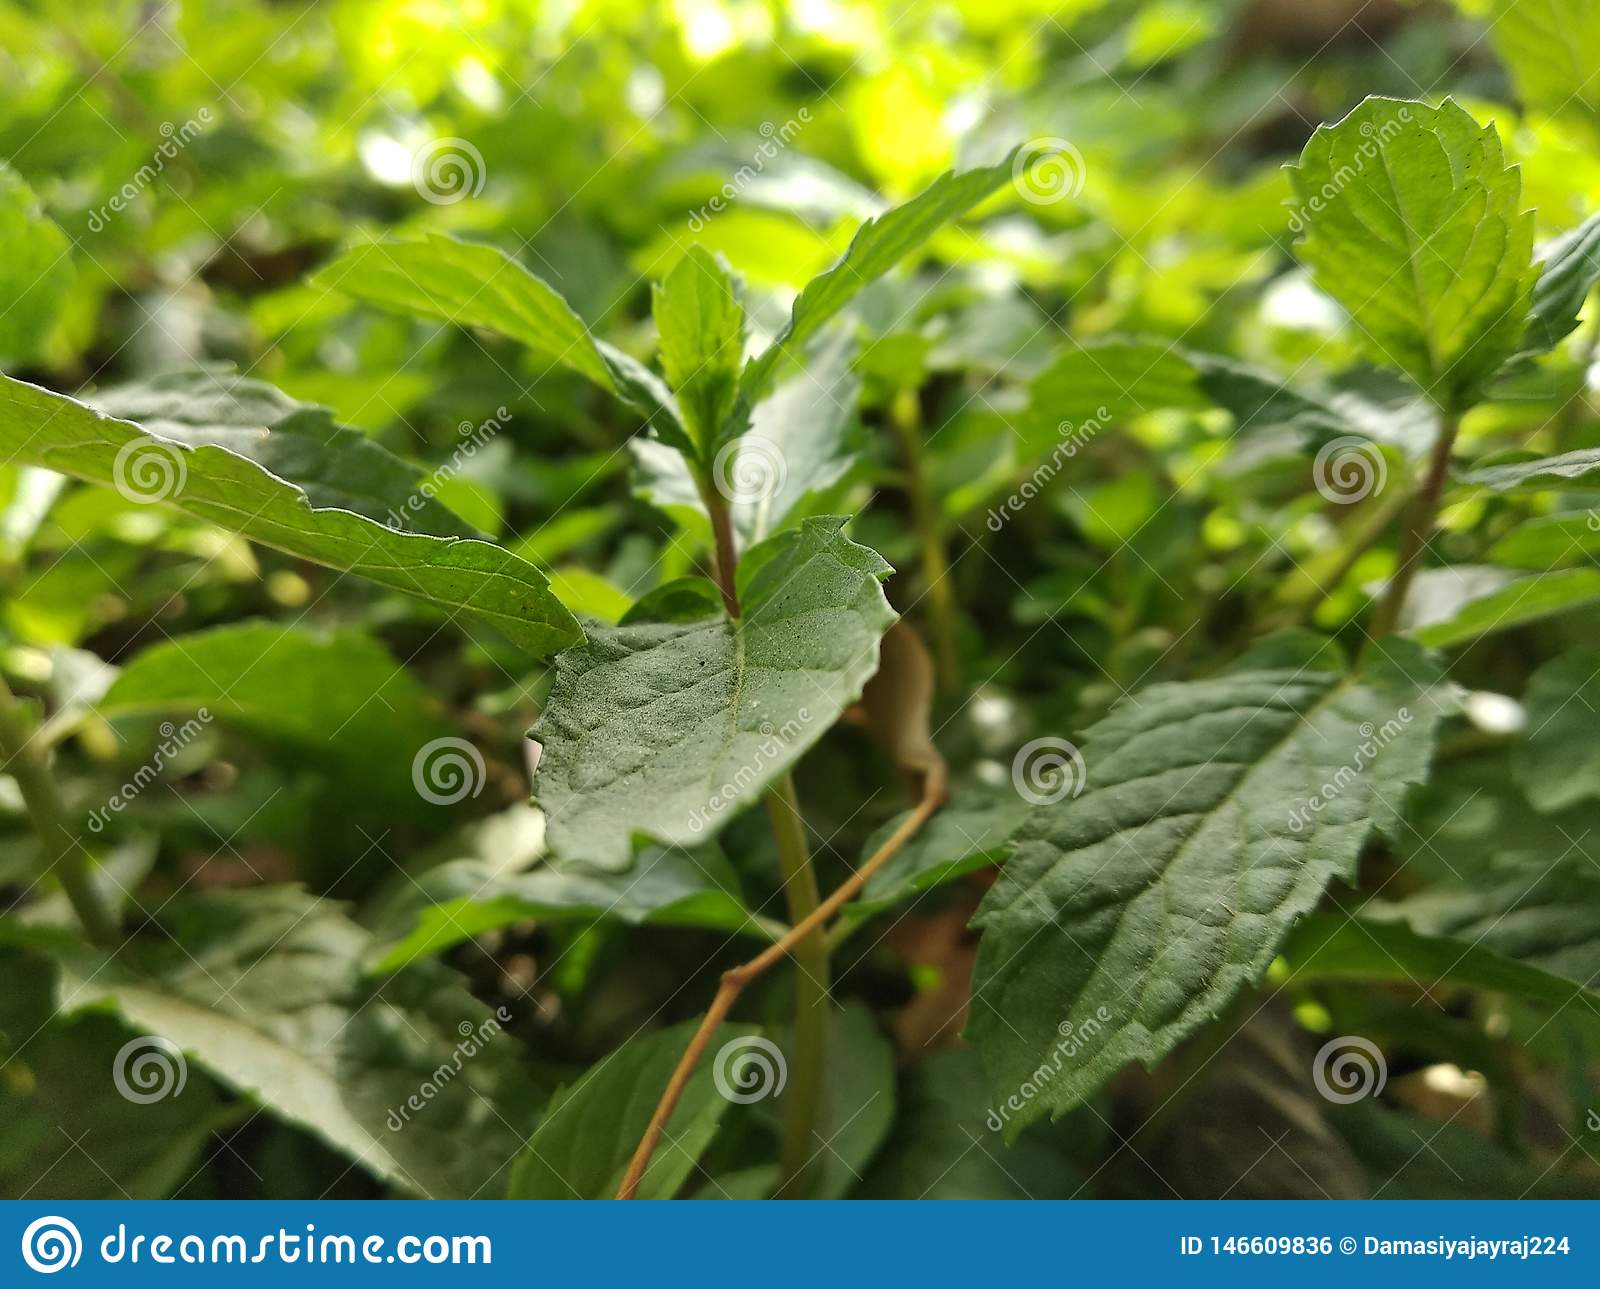 Green leaves of mint plant